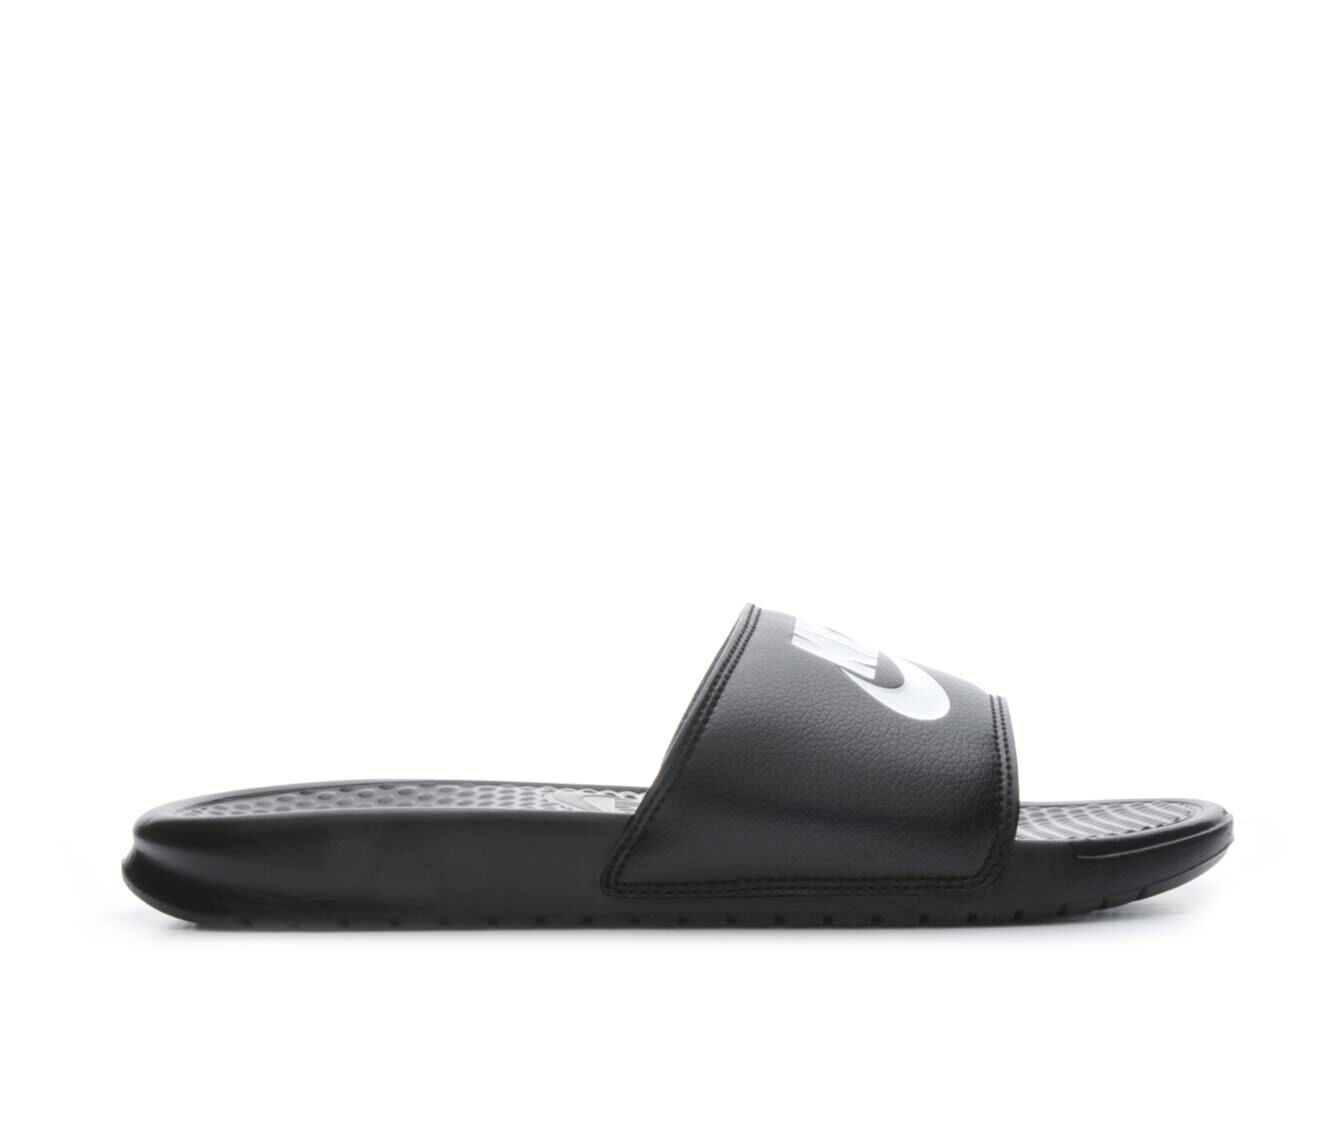 new arrivals Men's Nike Benassi JDI Sport Slides Black/White